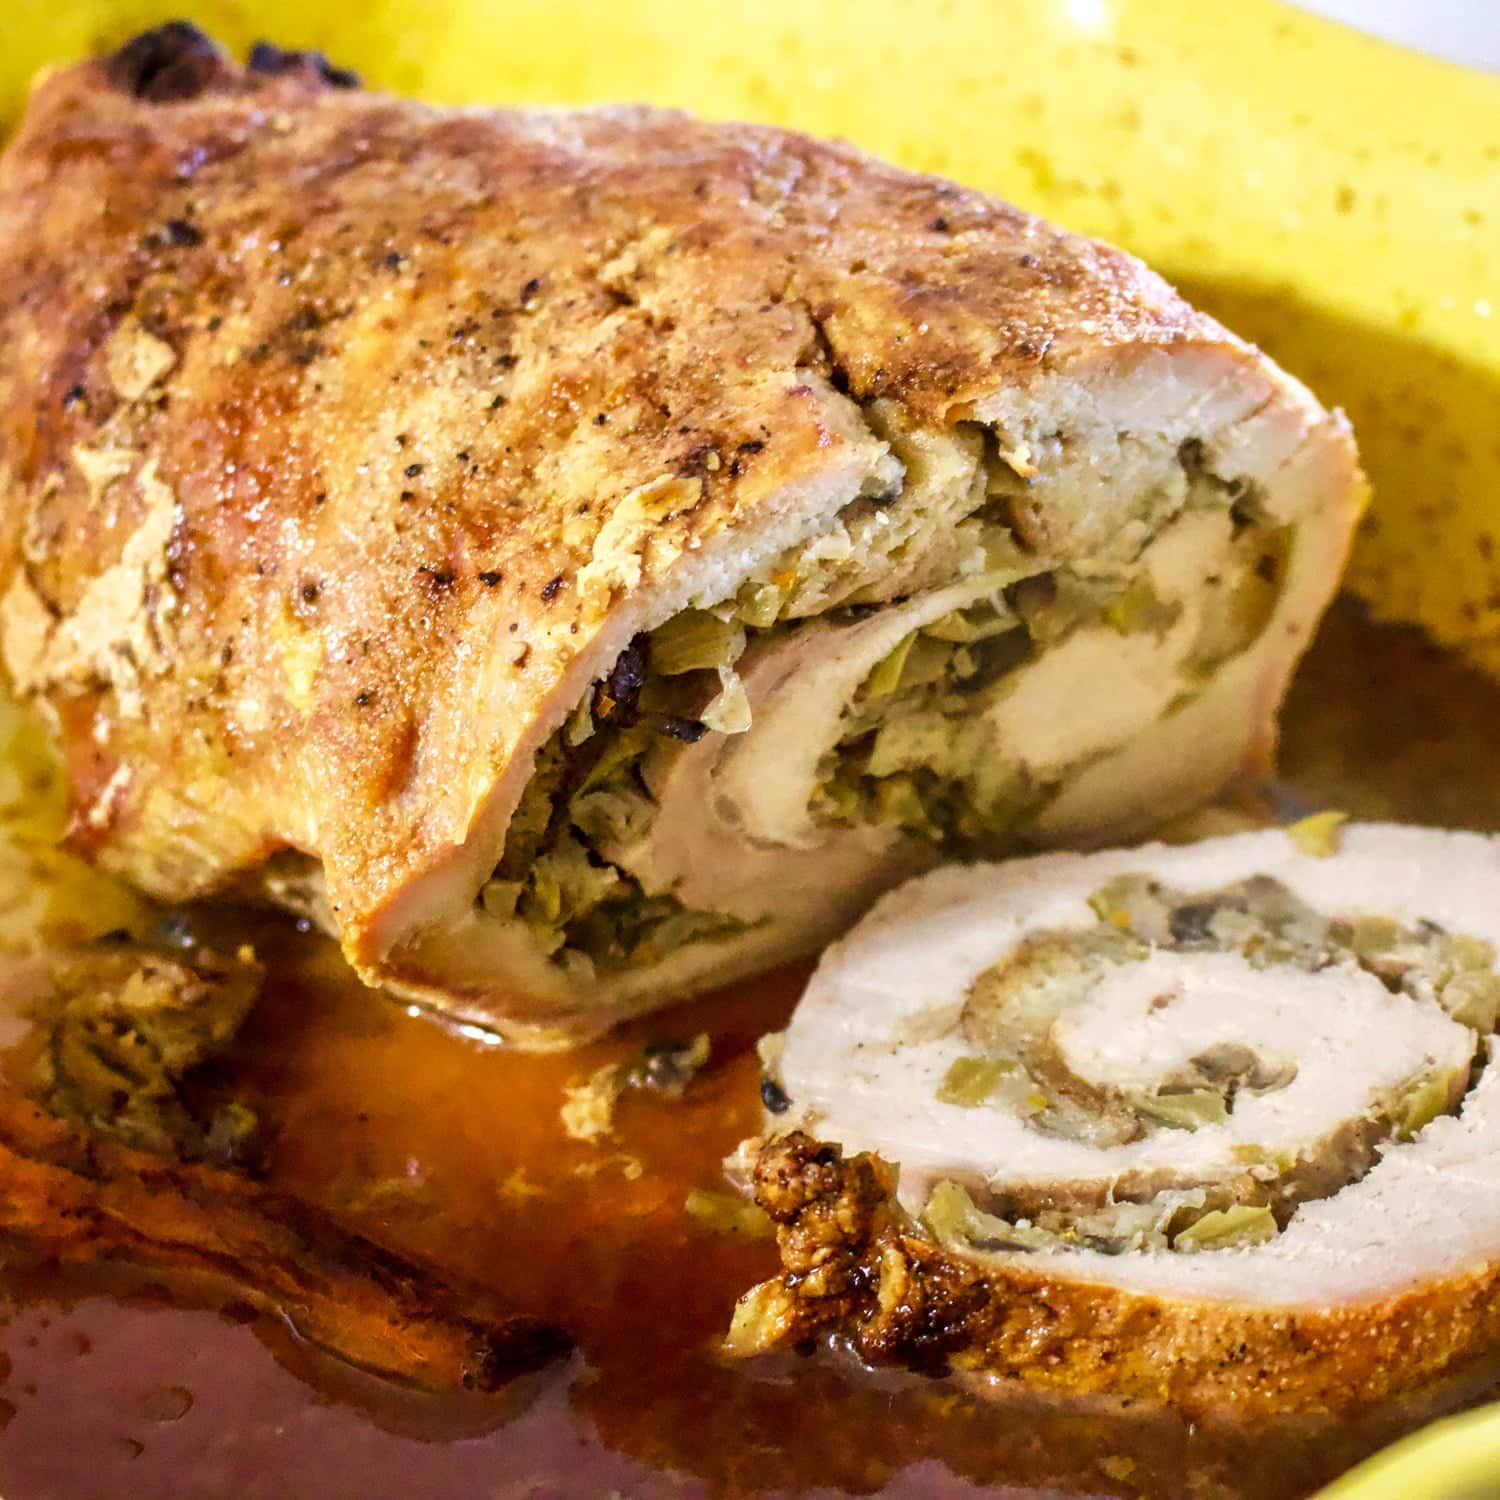 Apple and mushroom stuffed roasted pork tenderloin is a recipe that makes a great alternative for the usual ham around the holidays.